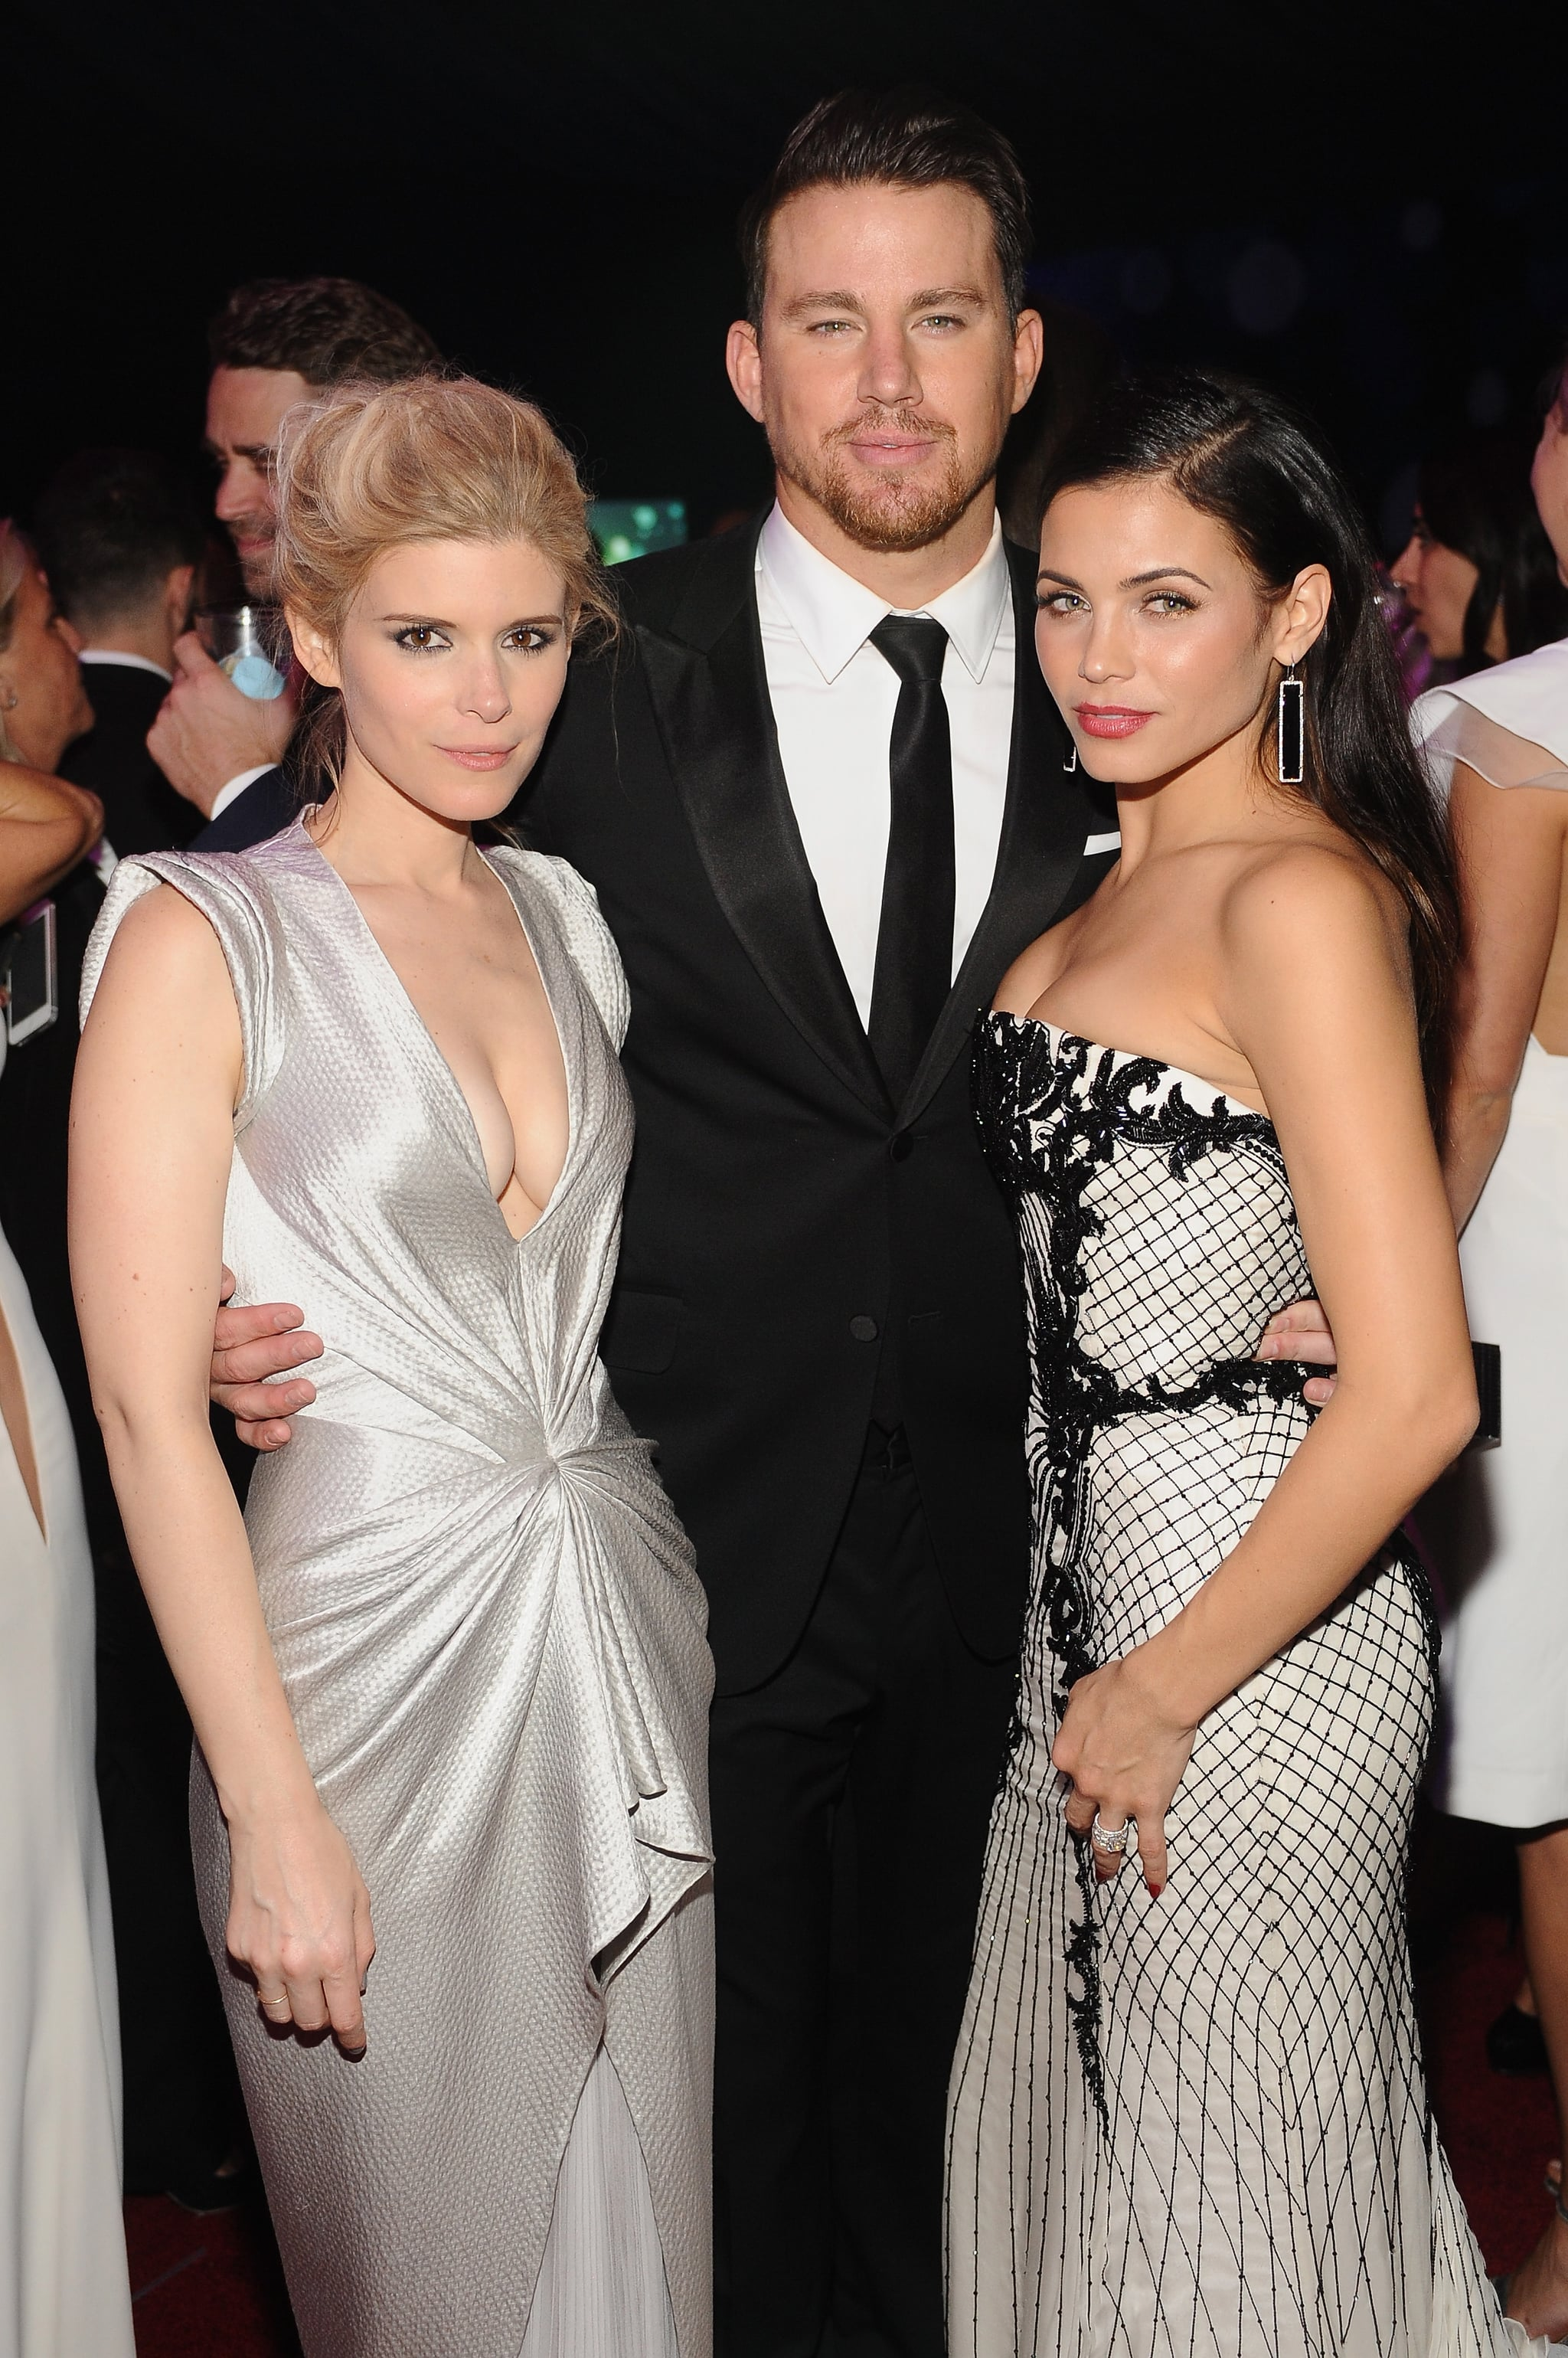 Channing Tatum and Jenna Dewan met up with Kate Mara inside the Warner Bros. bash.